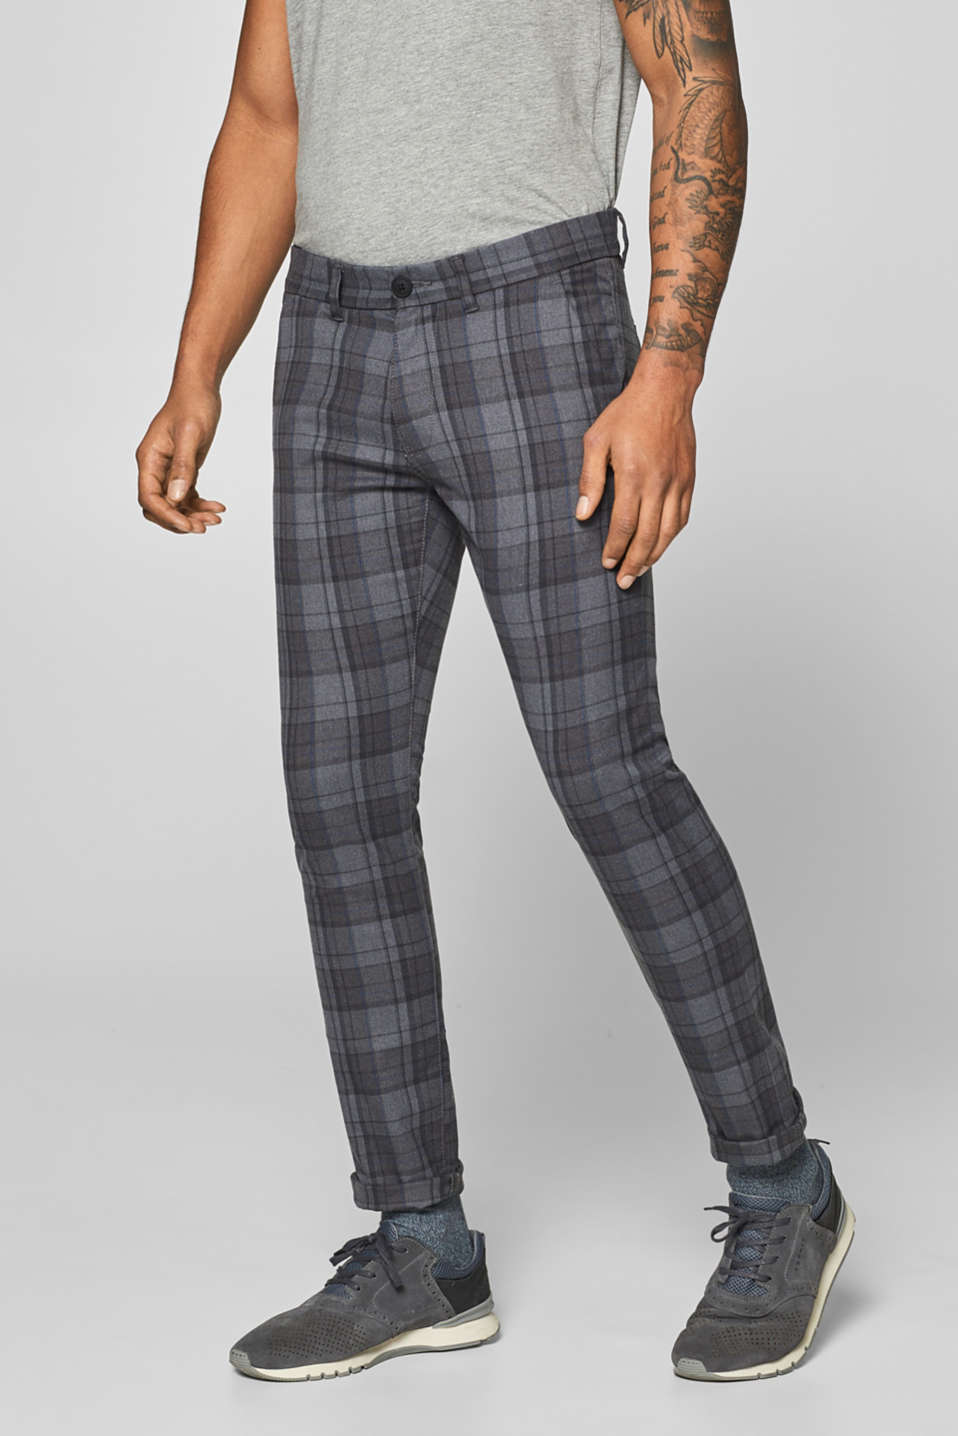 edc - Pantalon stretch à motif carreaux Prince de Galles